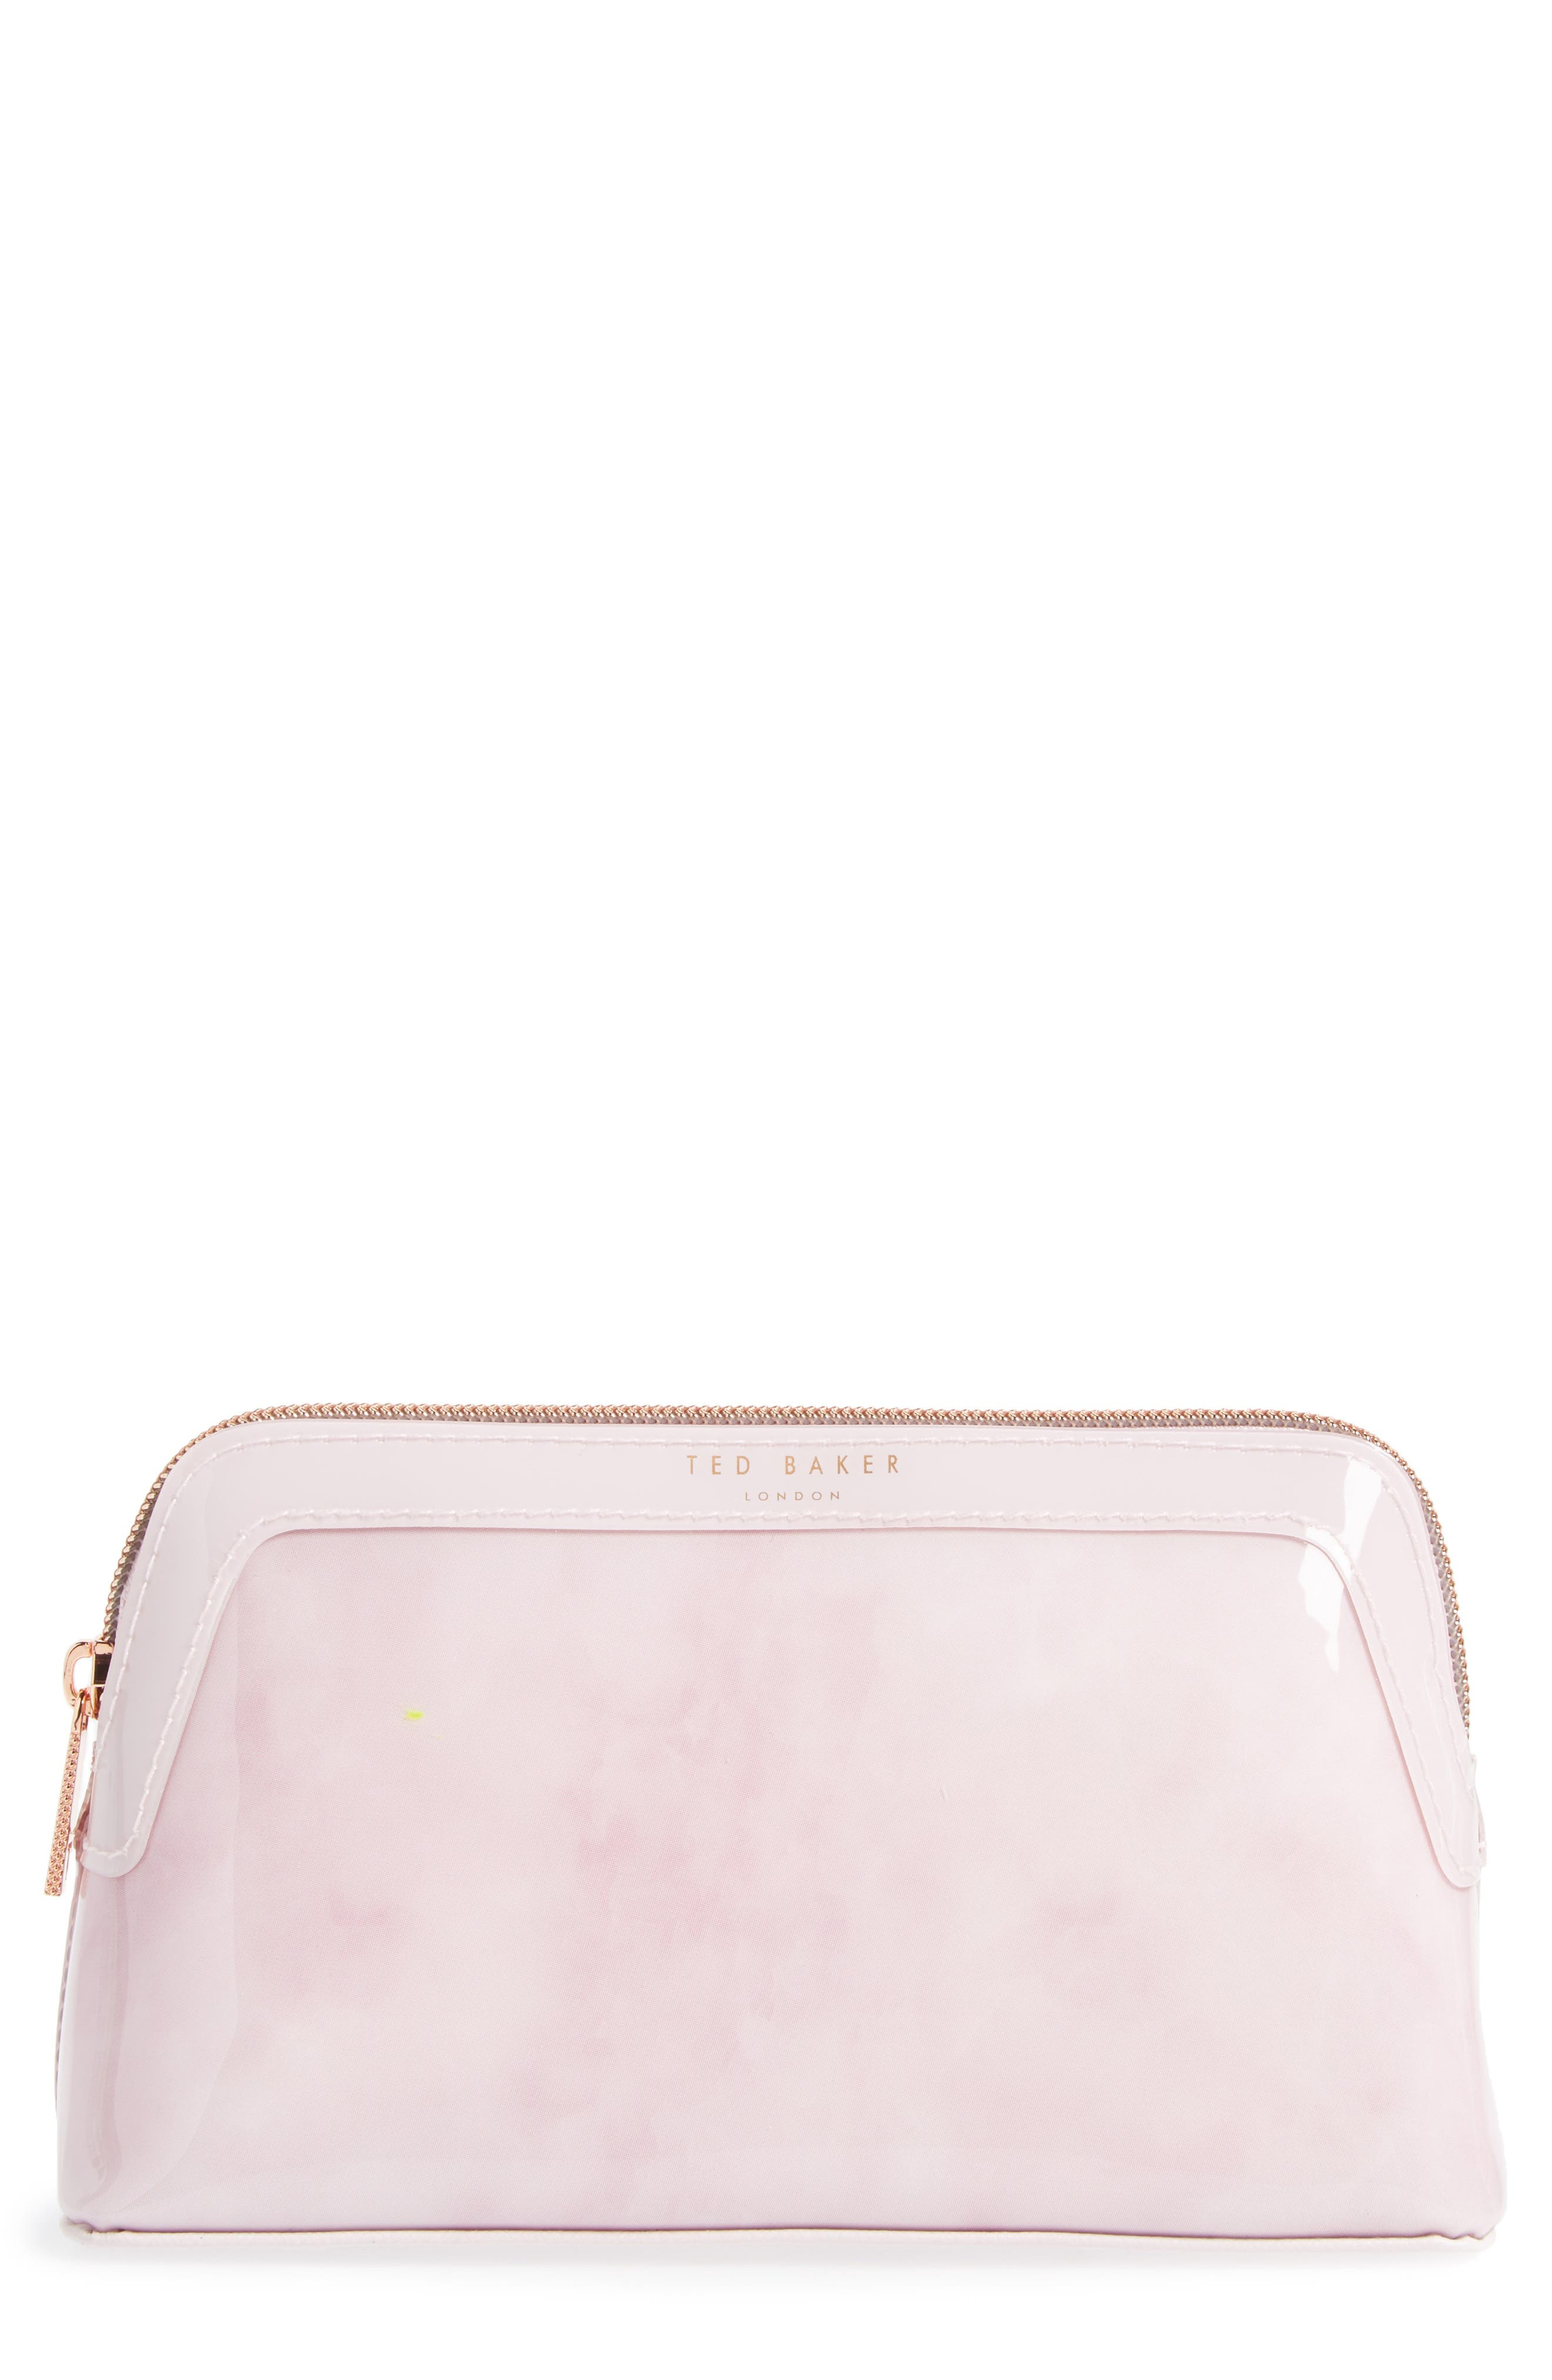 Zandra - Rose Quartz Cosmetics Bag,                         Main,                         color, Nude Pink